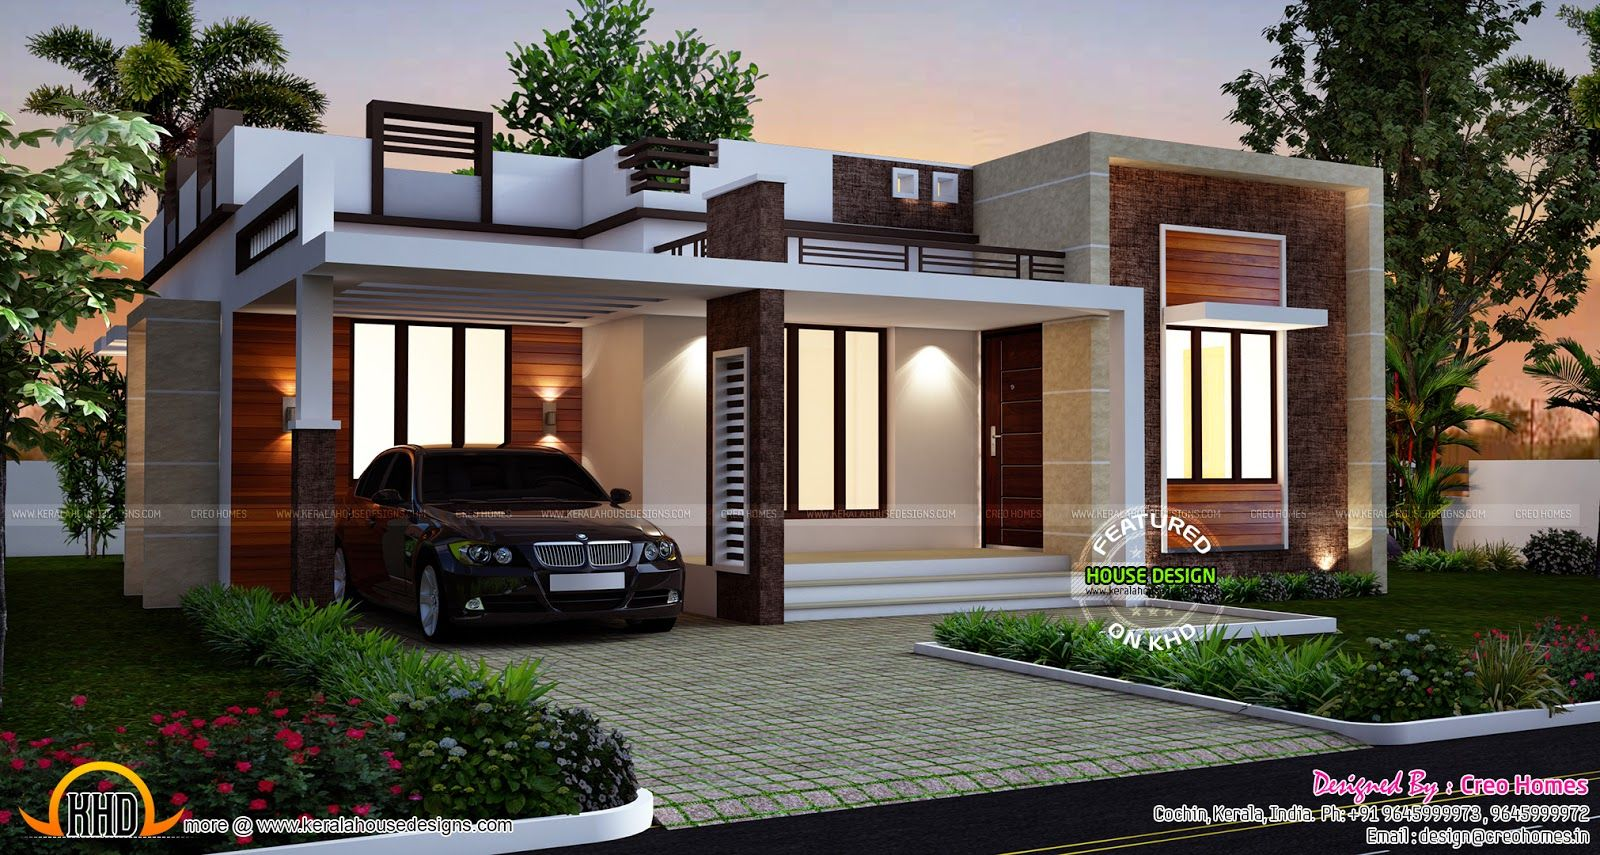 20 Photos Of Small Beautiful And Cute Bungalow House Design Ideal For  Philippines | House Design | Pinterest | Bungalow House Design, House Design  And ...